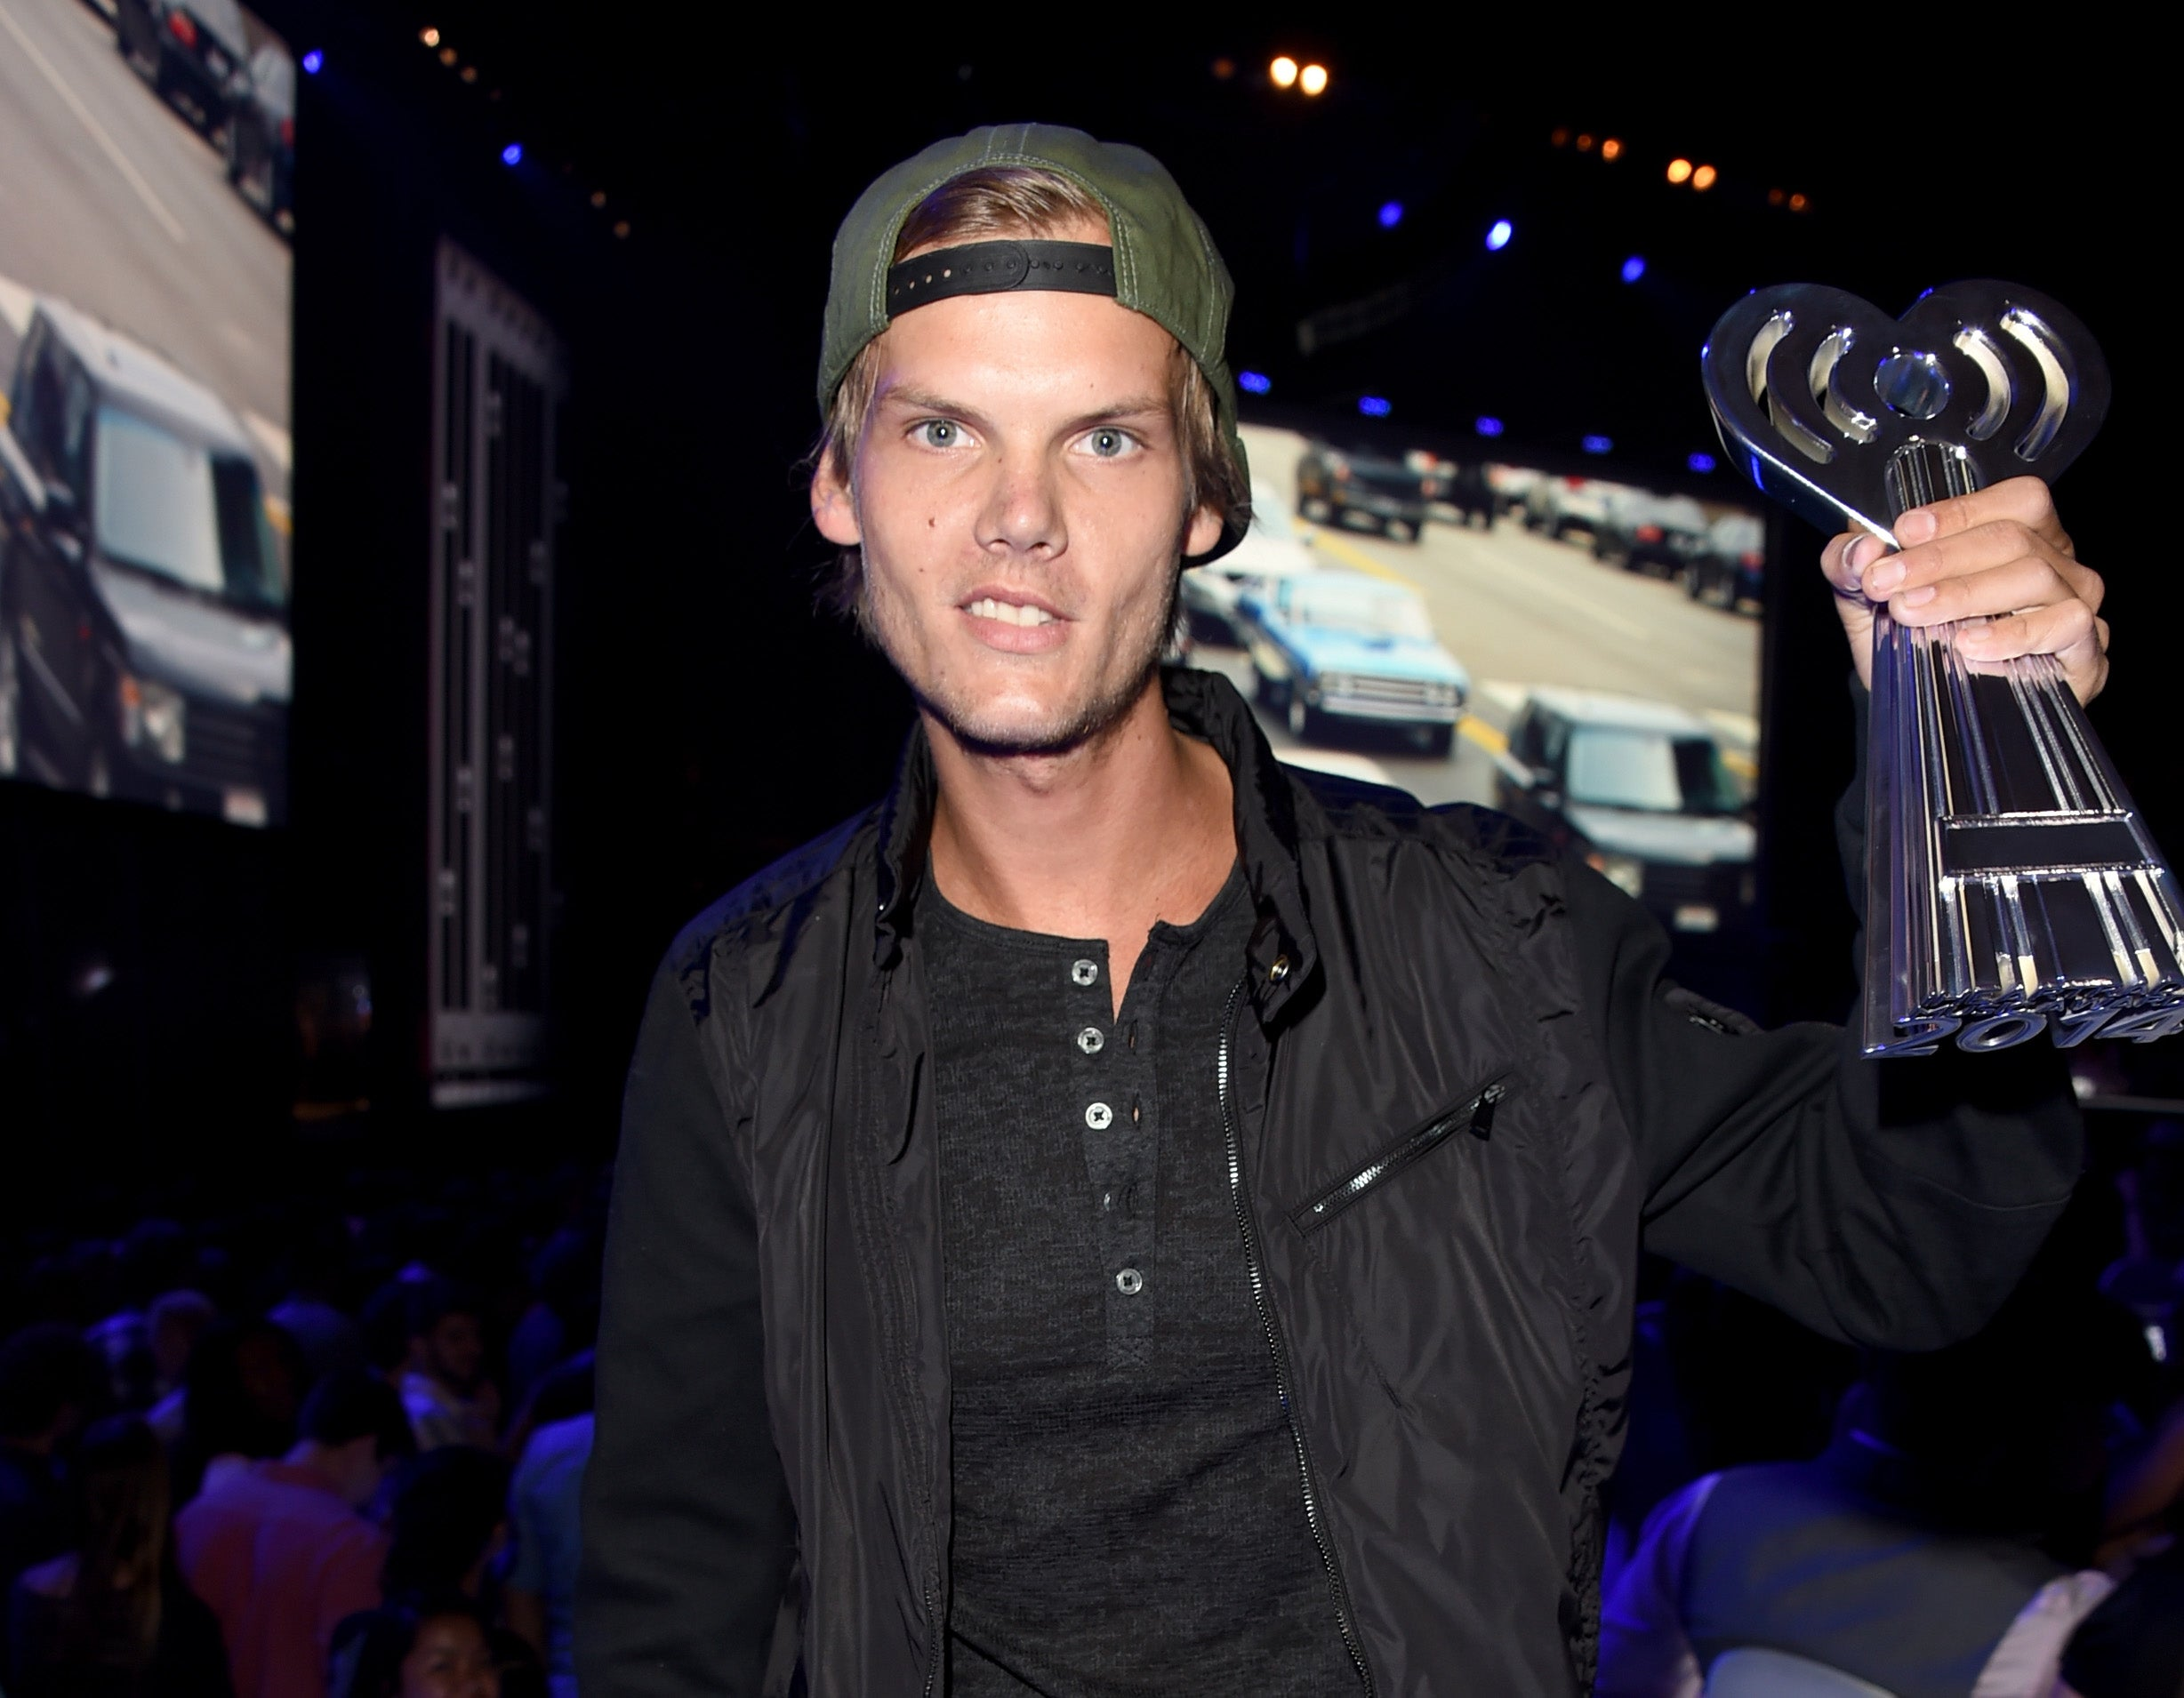 Avicii dead: Swedish DJ and musician passes away aged 28